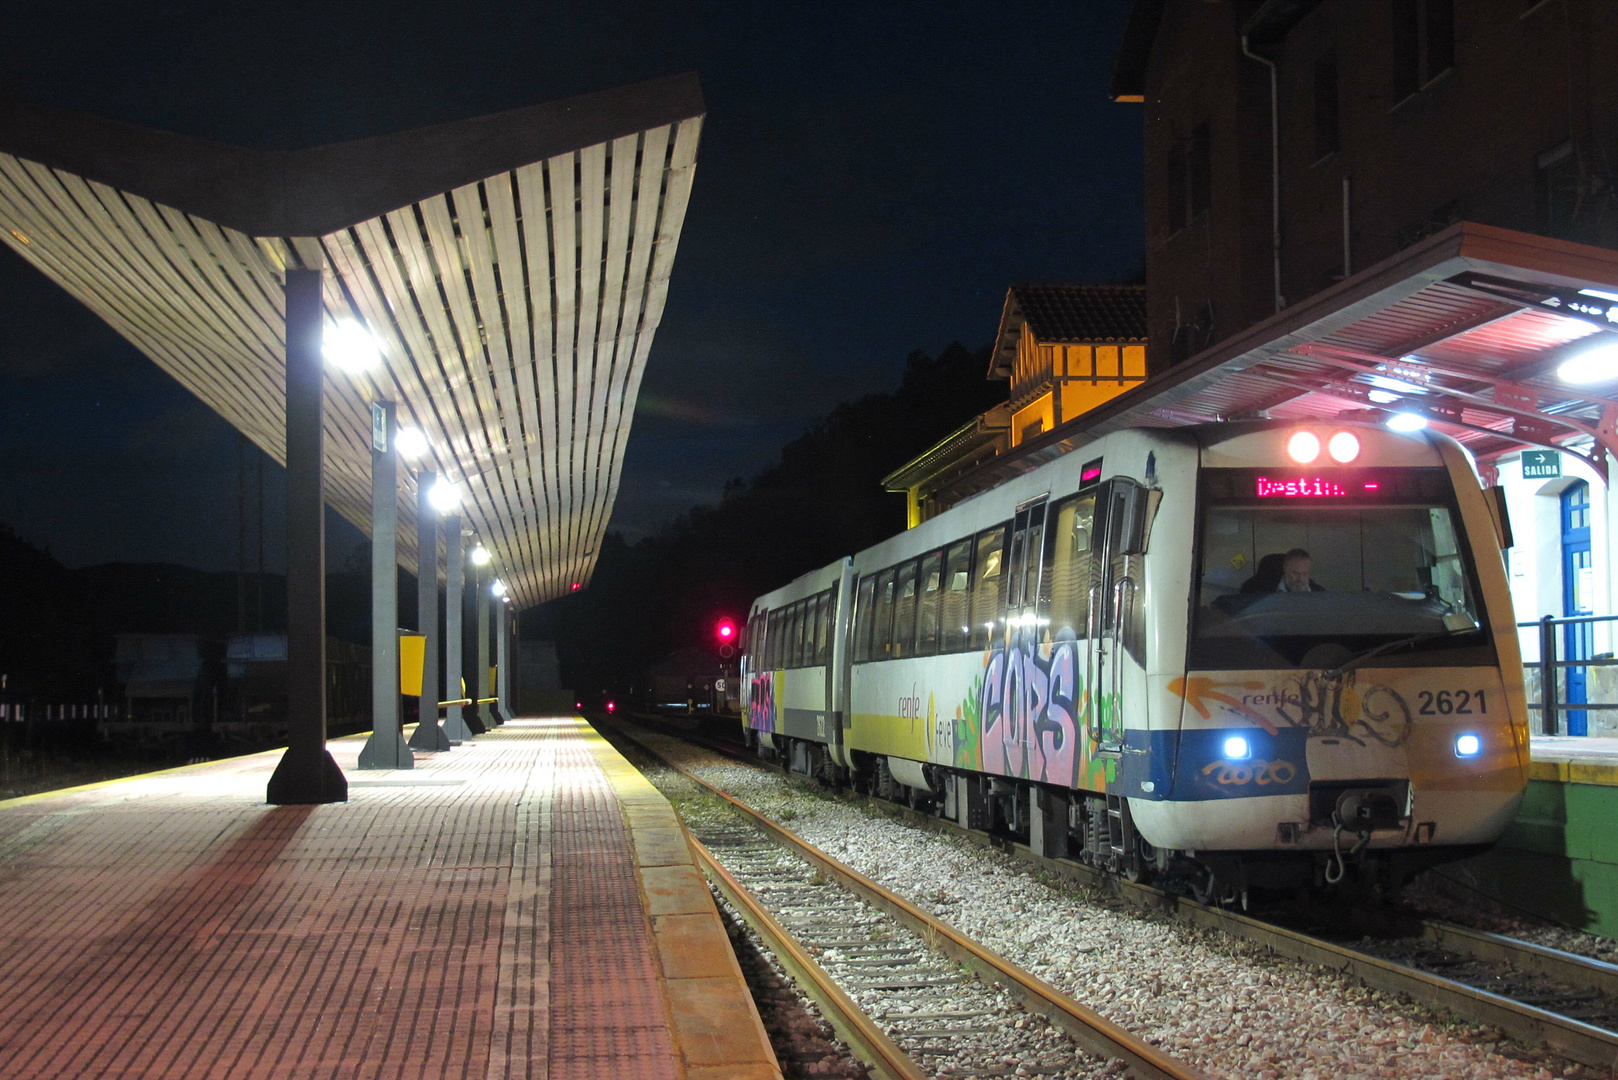 Man 2621 at Figaredo station to Collanzo